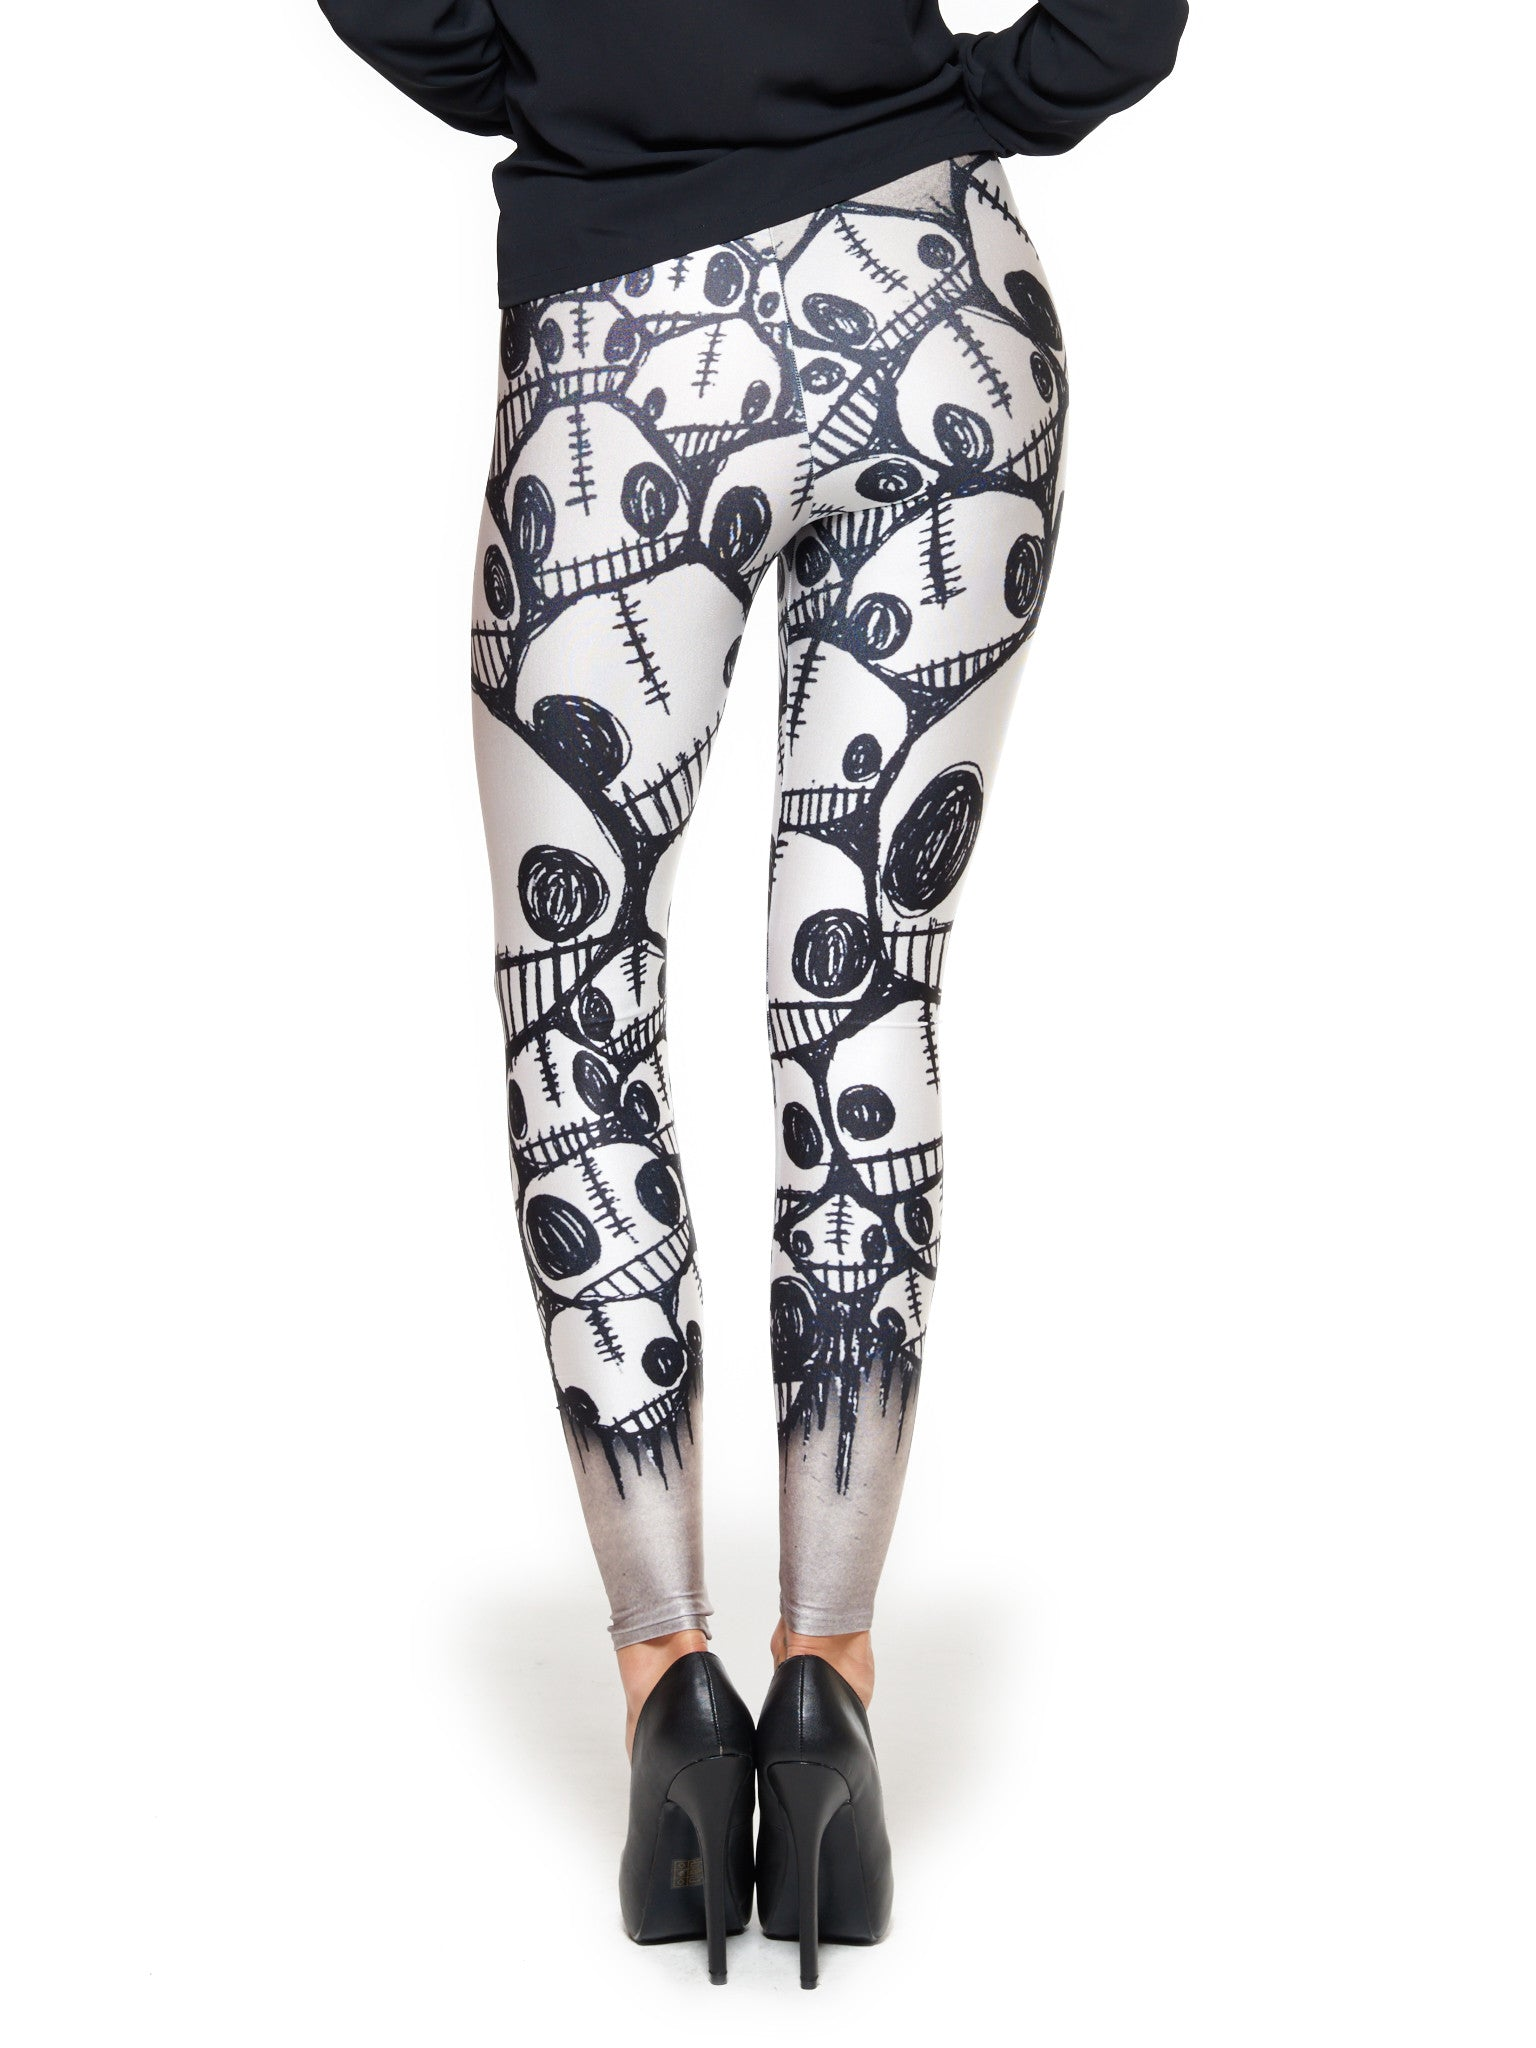 Little Monster Faces Queen West Leggings - Nuvango  - 3